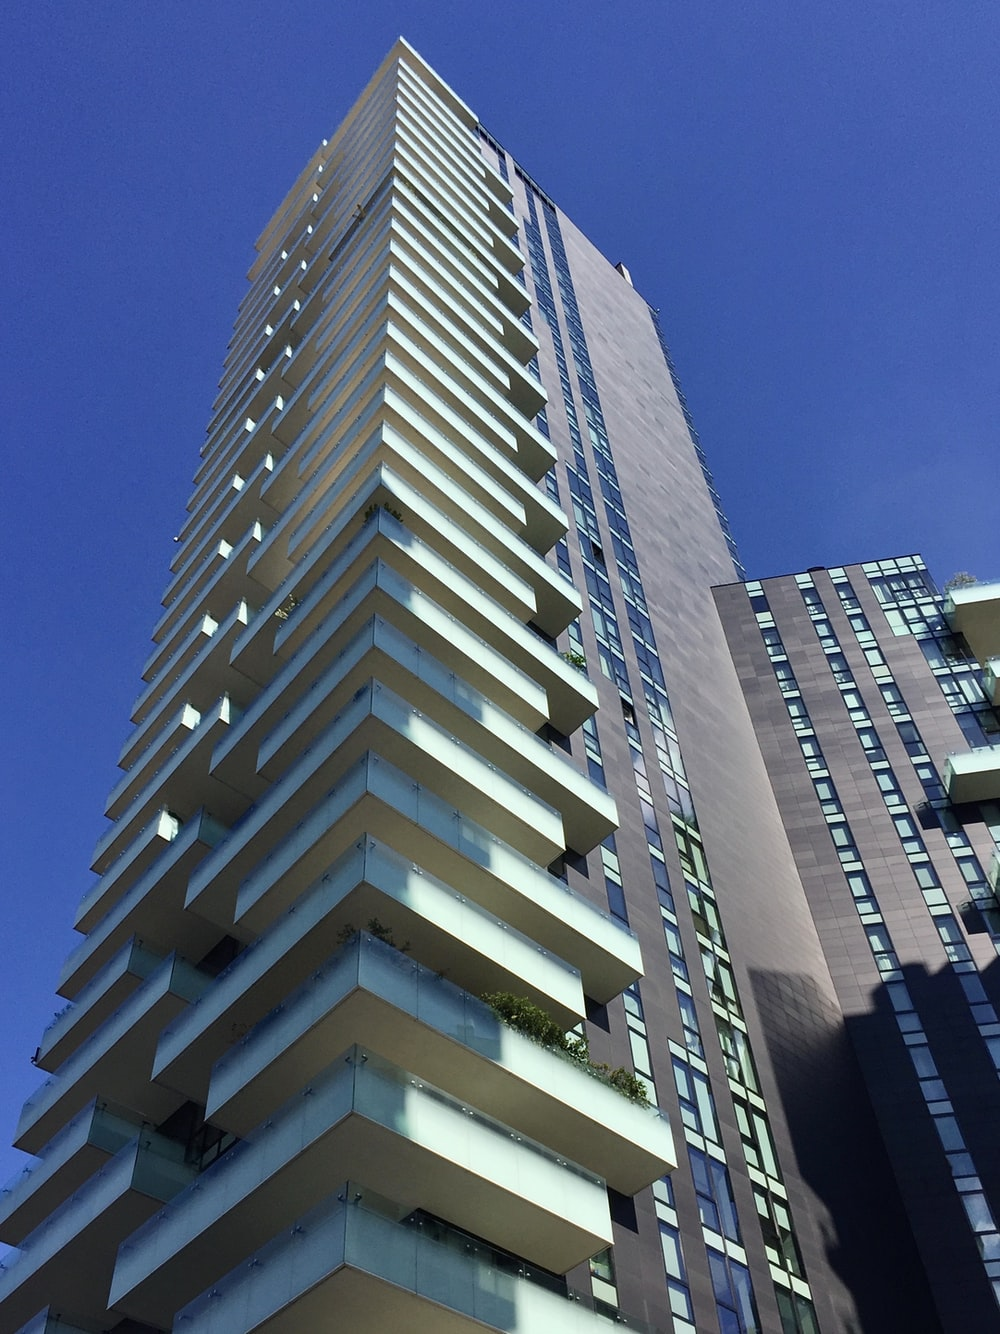 low-angle photography of gray high-rise building during daytime